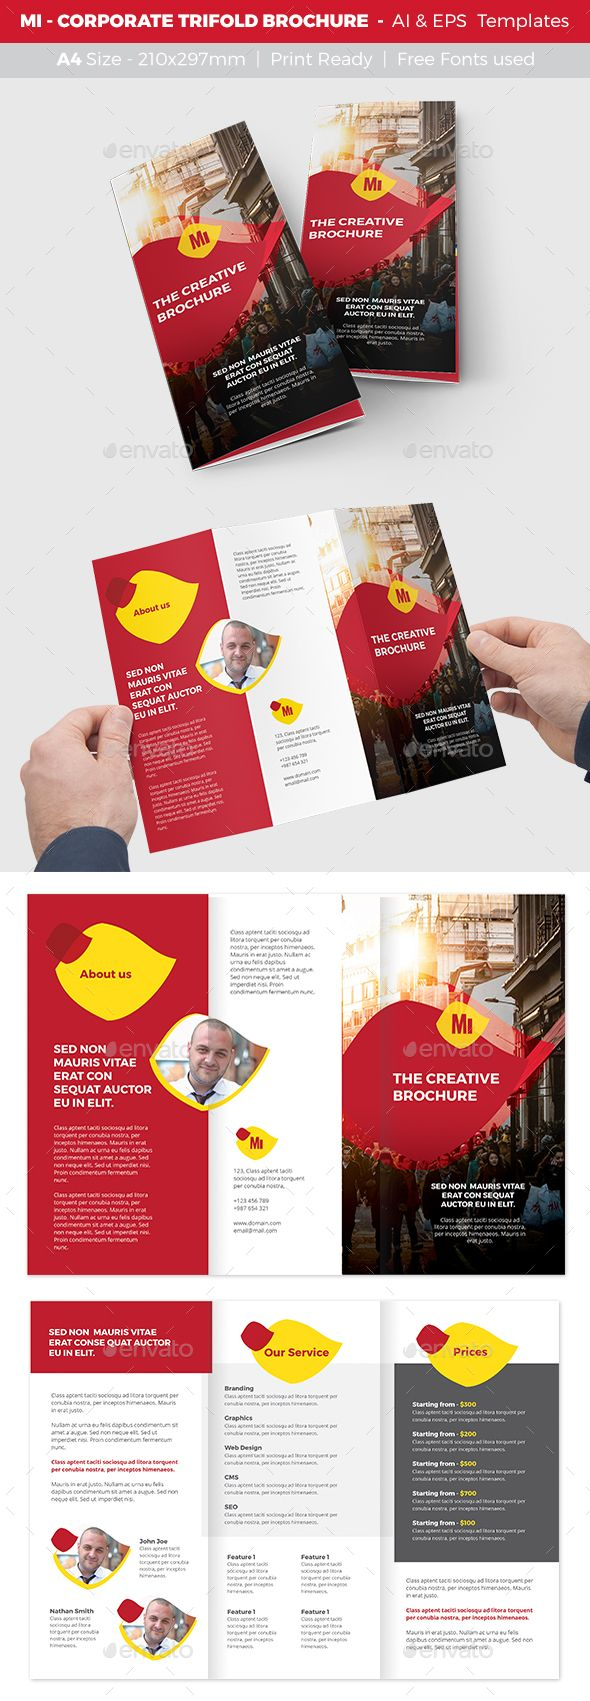 MI   Corporate Trifold Brochure